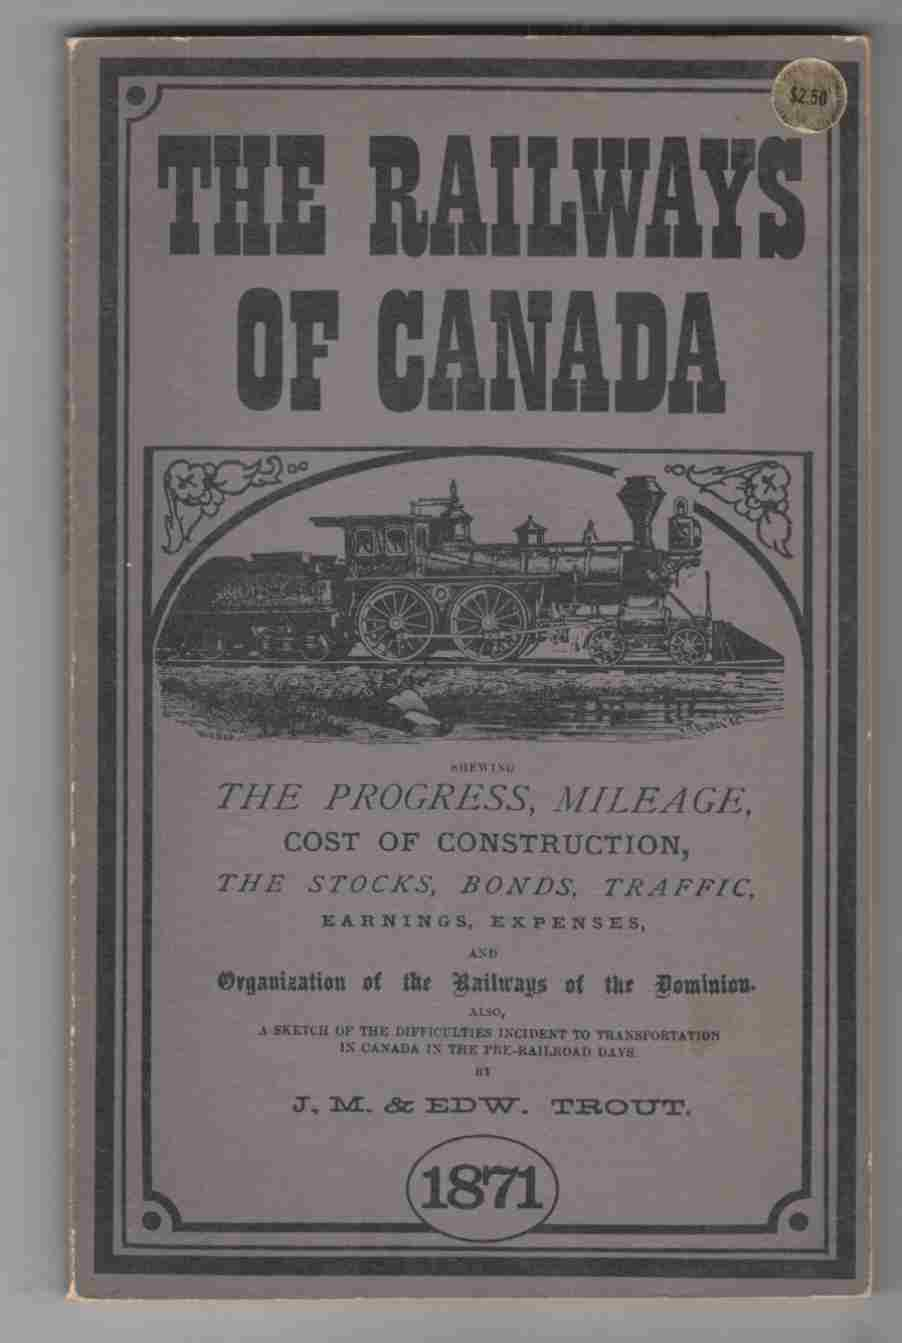 Image for The Railways of Canada for 1870-1, Shewing the Progress, Mileage, Cost of Construction, the Stocks, Bonds, Traffic, Moving Expenses, and Organization of the Railways of the Dominion.